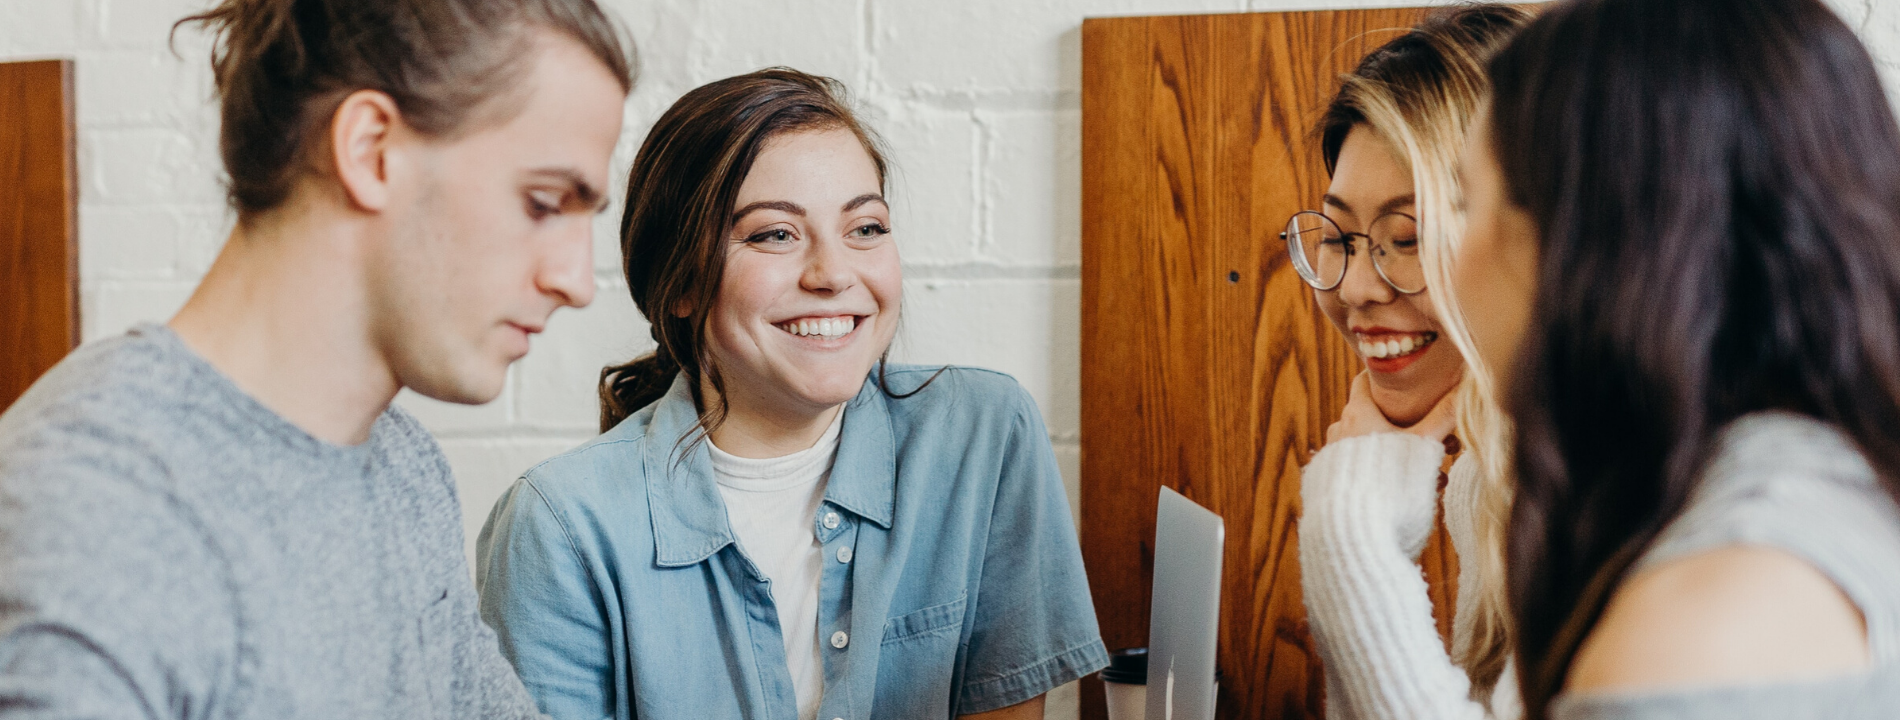 Best practices for boosting employee engagement in the workplace